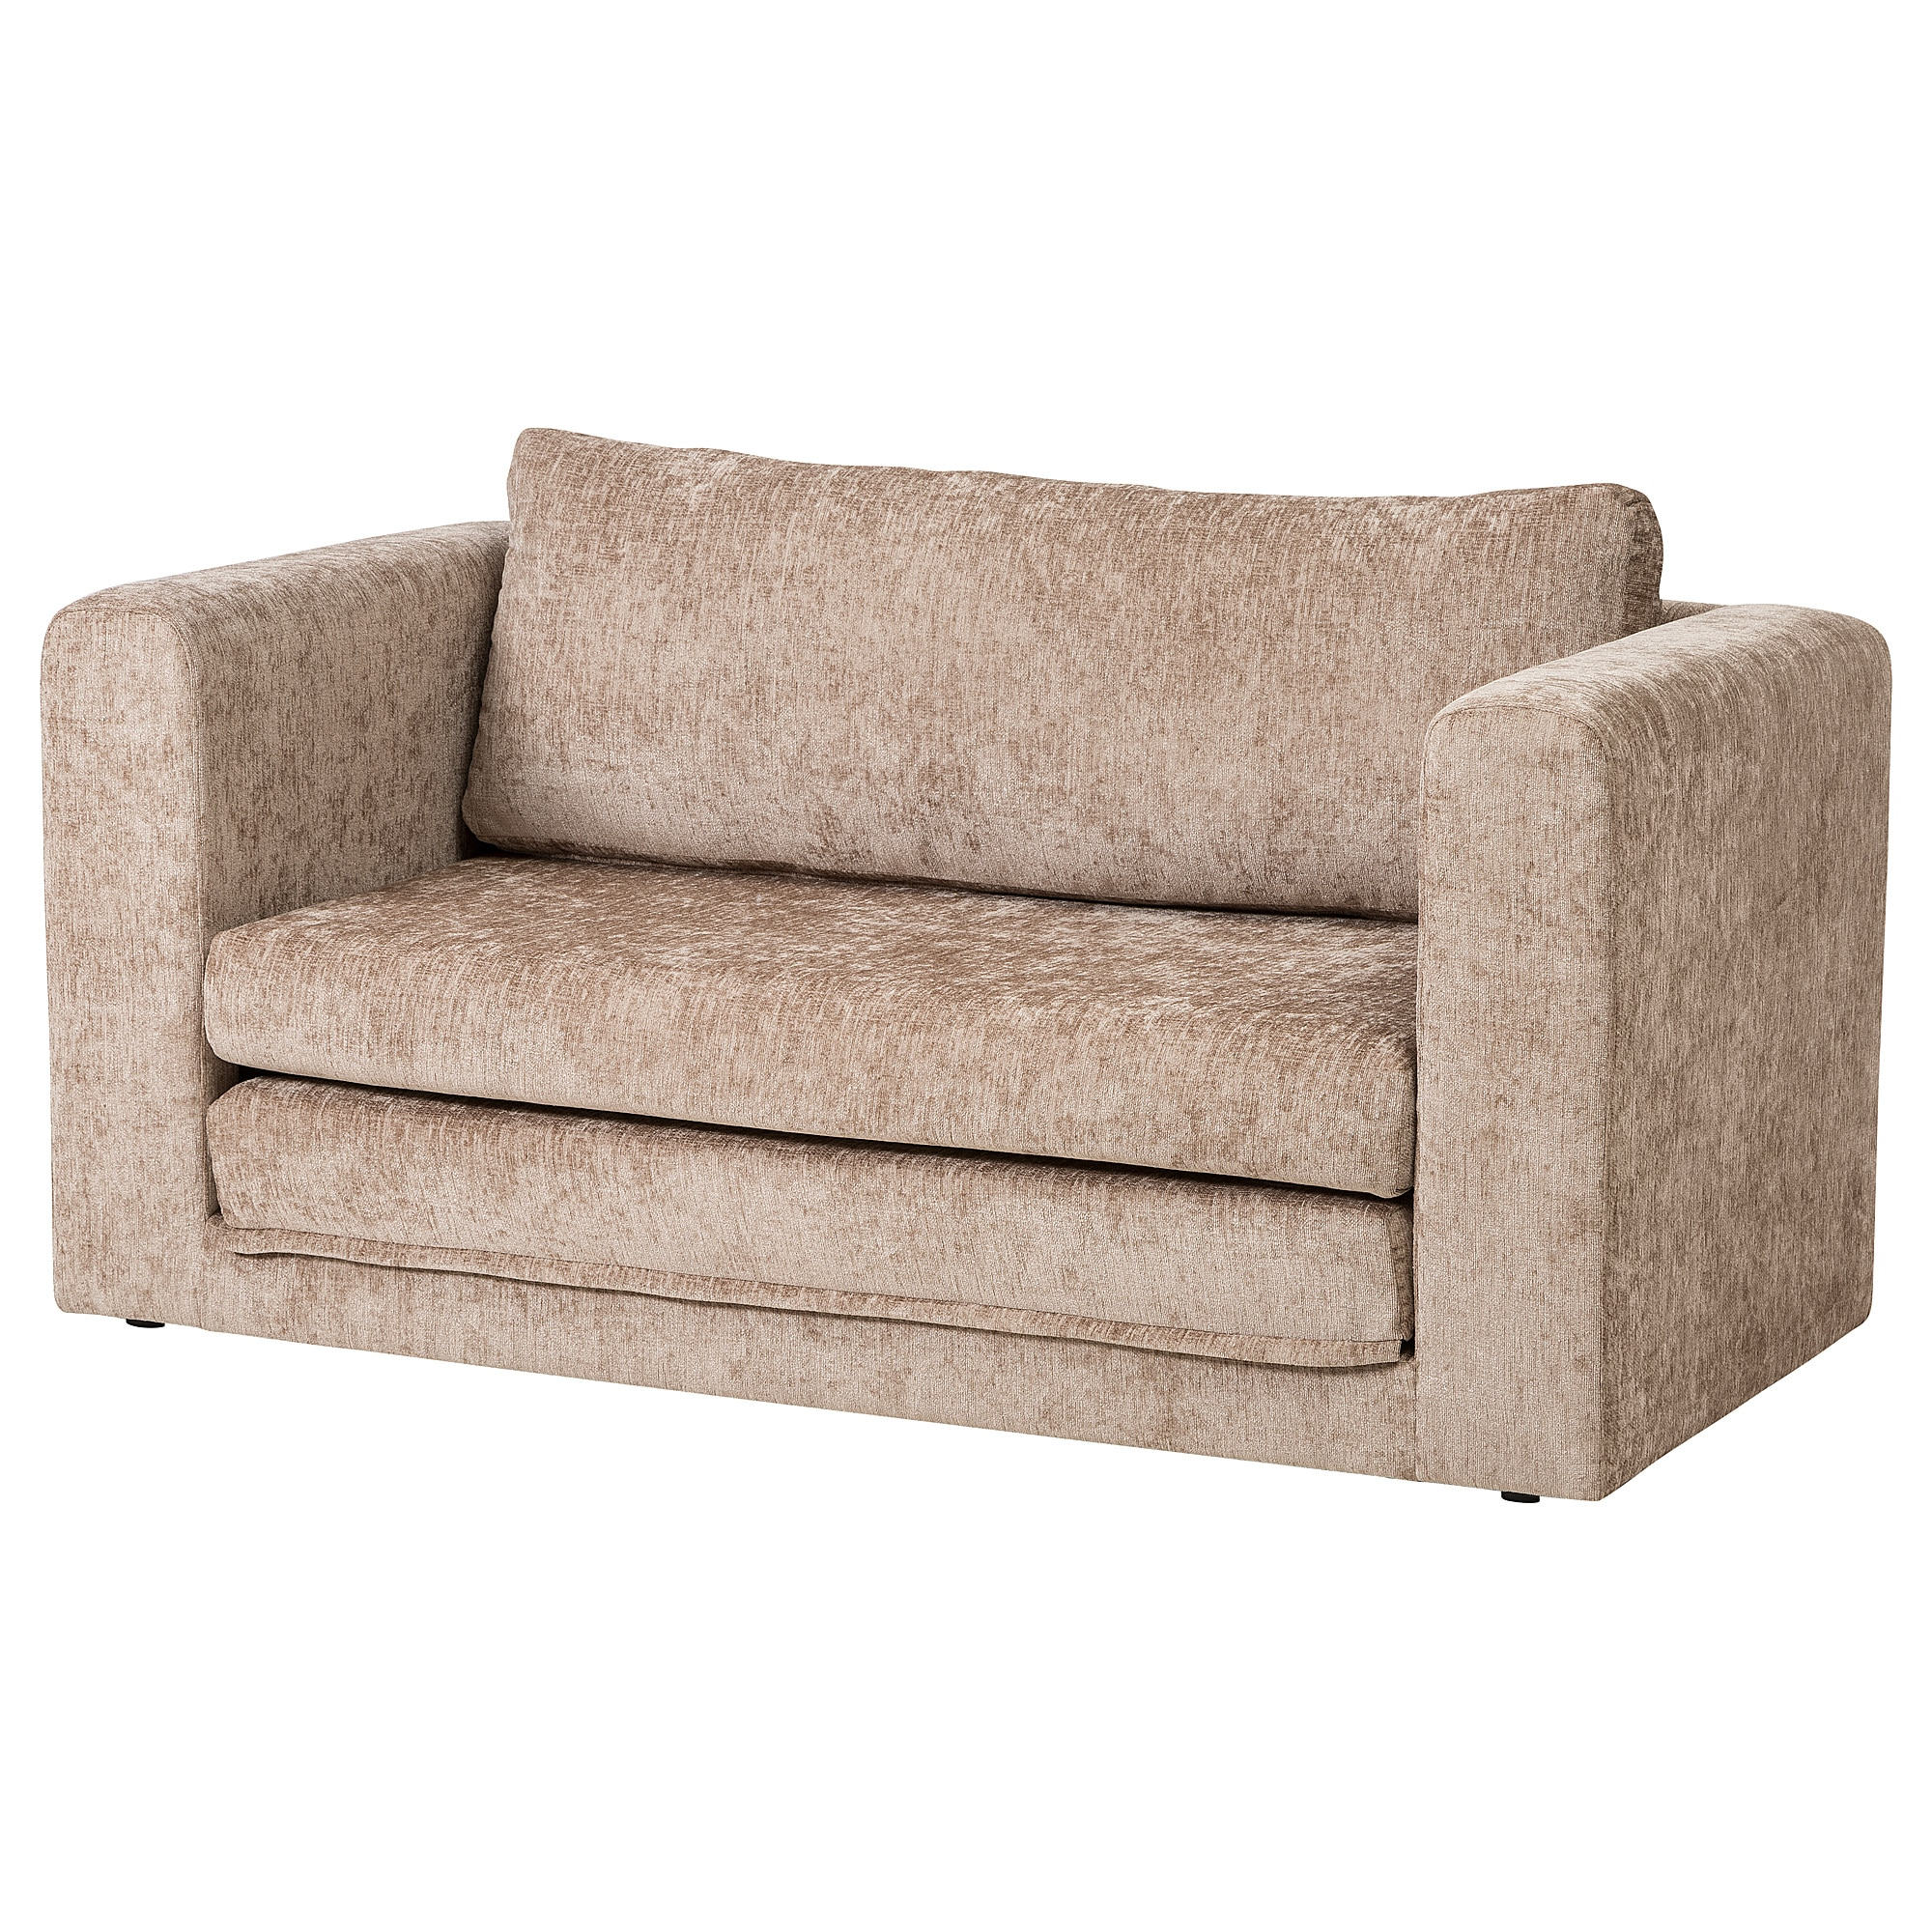 ASKEBY 2-seat sofa-bed - beige - IKEA